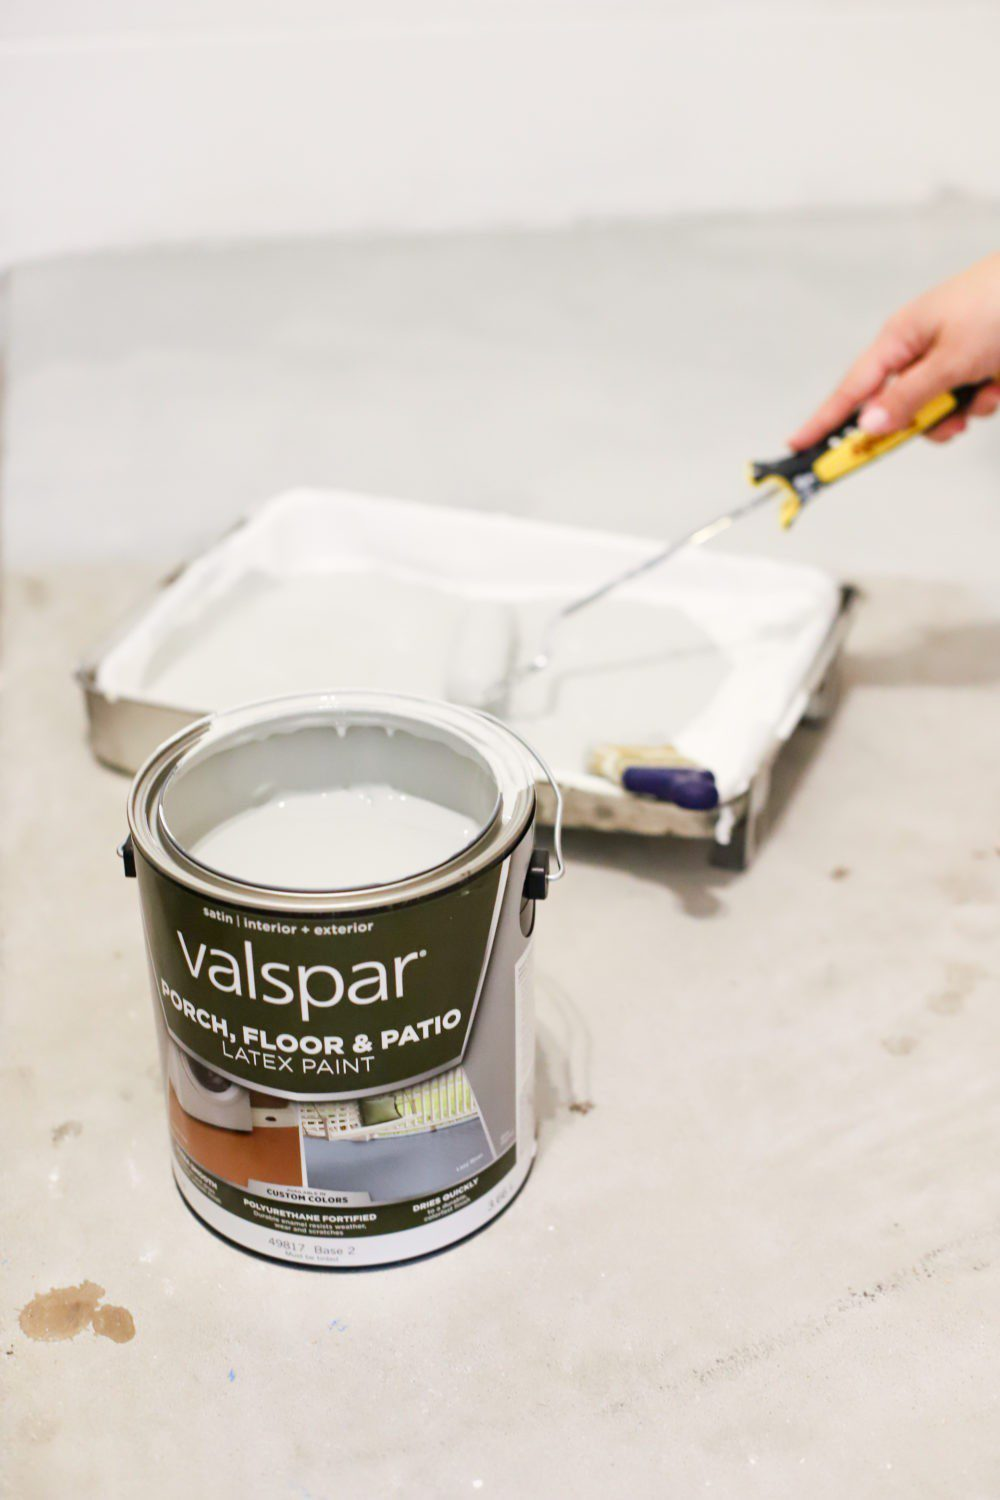 Laundry Room DIY: How to Paint a Cement Floor with Stencils | Laundry Room DIY: How to Paint a Cement Floor with Stencils by popular home decor blog, Fresh Mommy: image of Valspar porch and floor paint, paint pan, and paint roller.